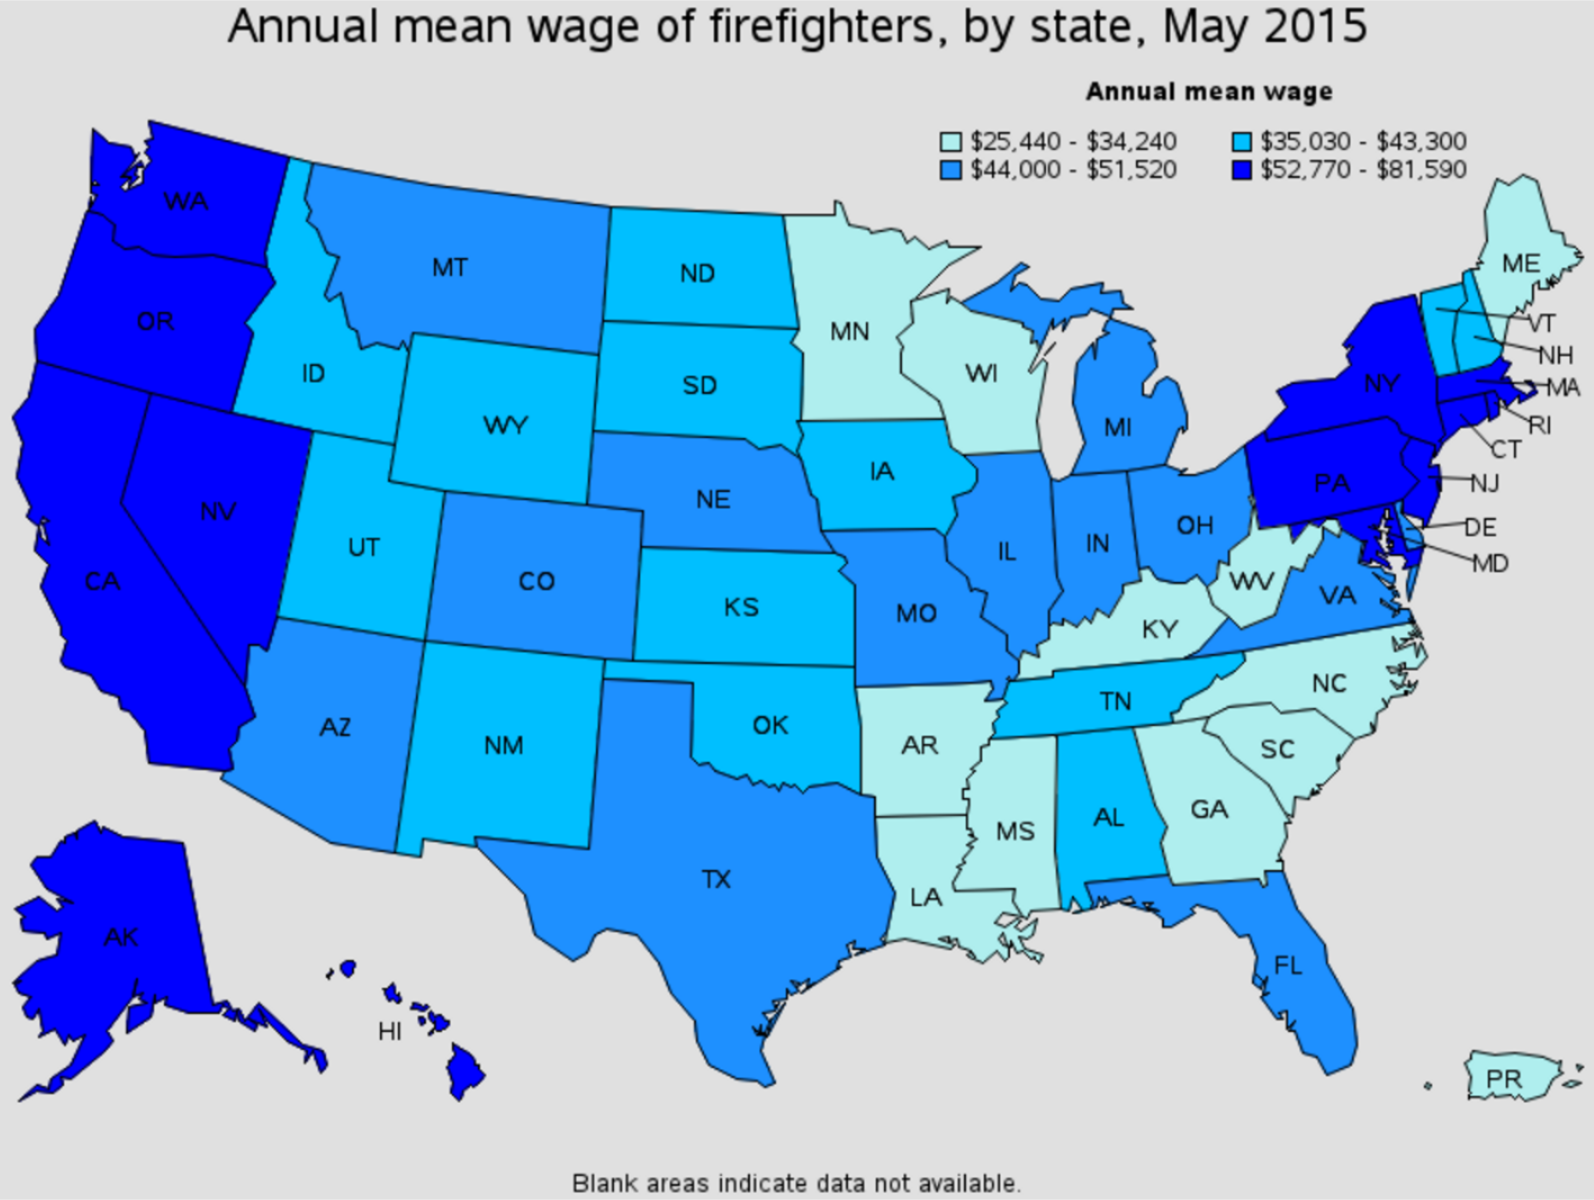 firefighter average salary by state Iron Mountain Michigan